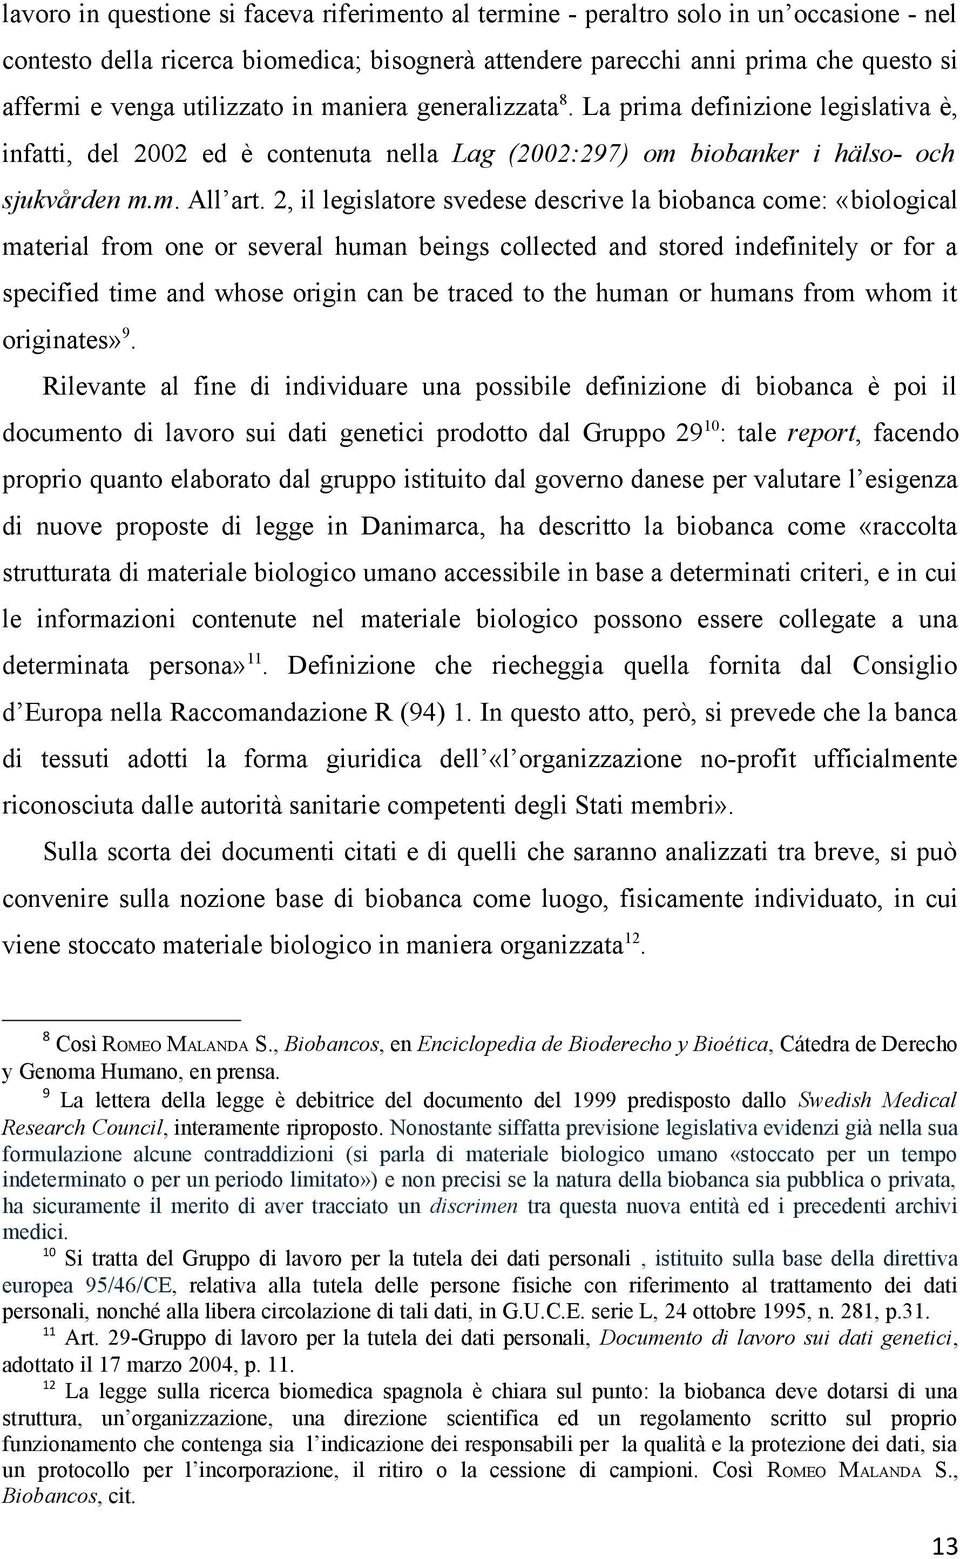 2, il legislatore svedese descrive la biobanca come: «biological material from one or several human beings collected and stored indefinitely or for a specified time and whose origin can be traced to